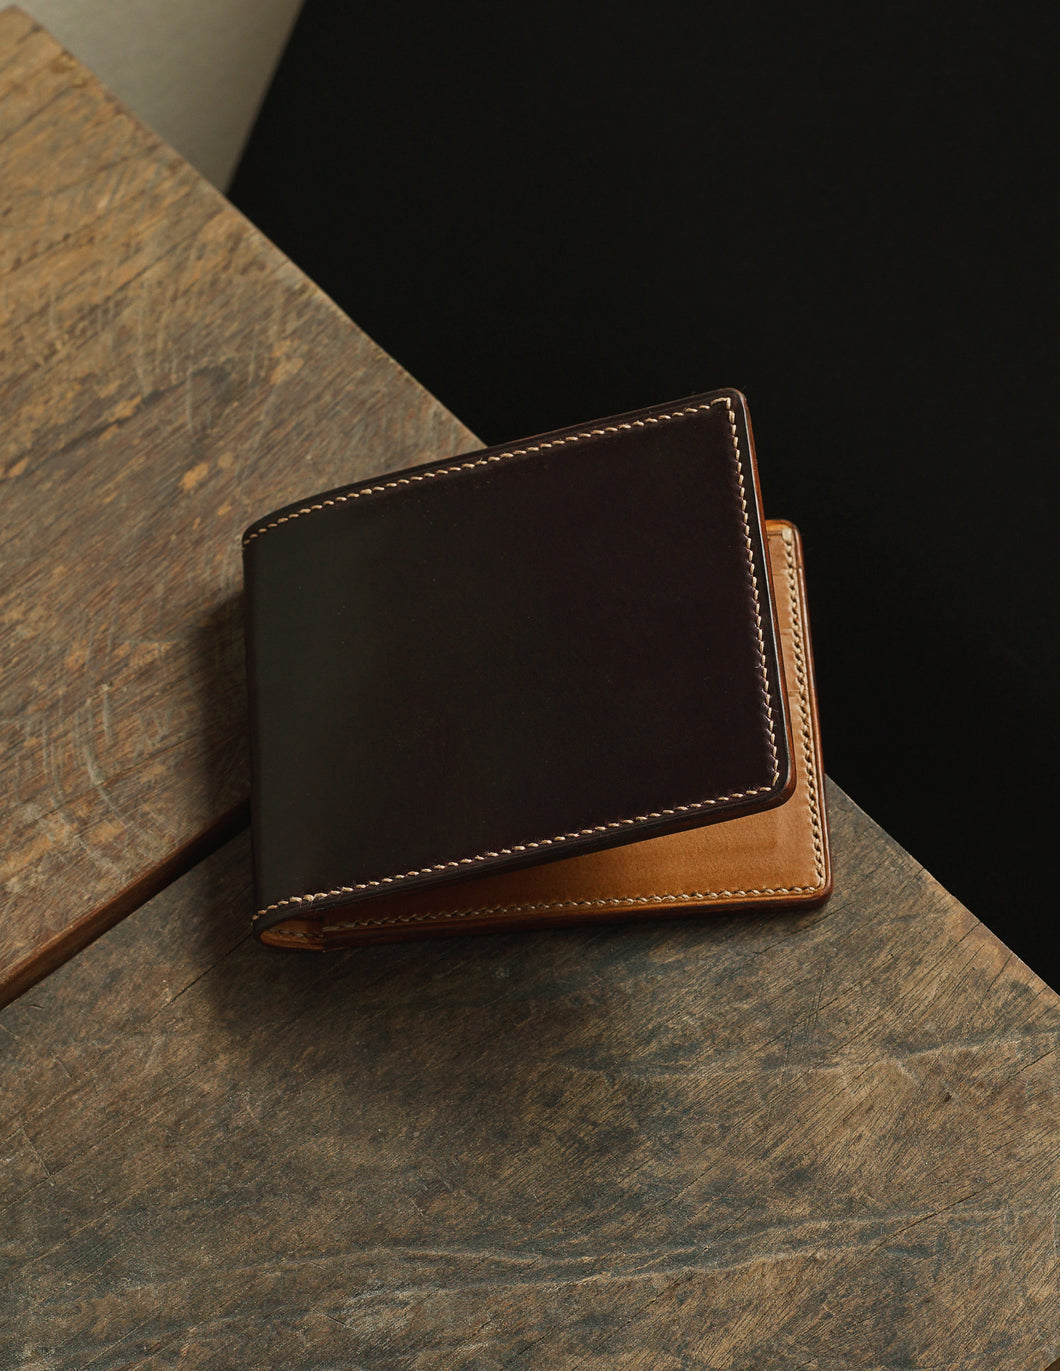 Shell Cordovan Heritage Wallet - Color8 x Buttero Sand Color